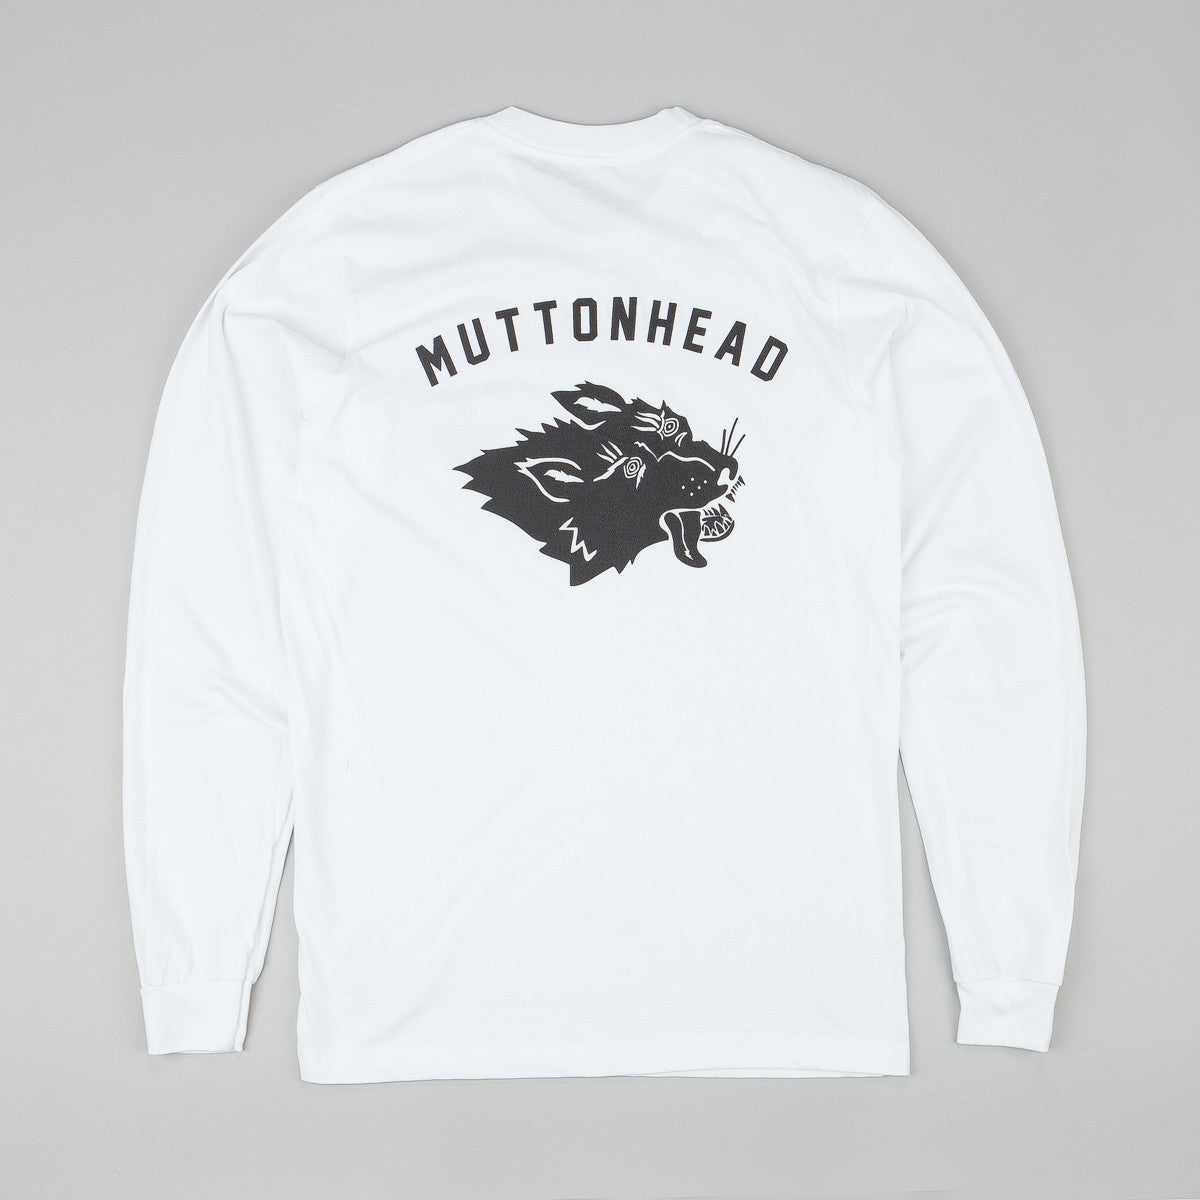 Muttonhead Stray Mutt Long Sleeve T-Shirt - White